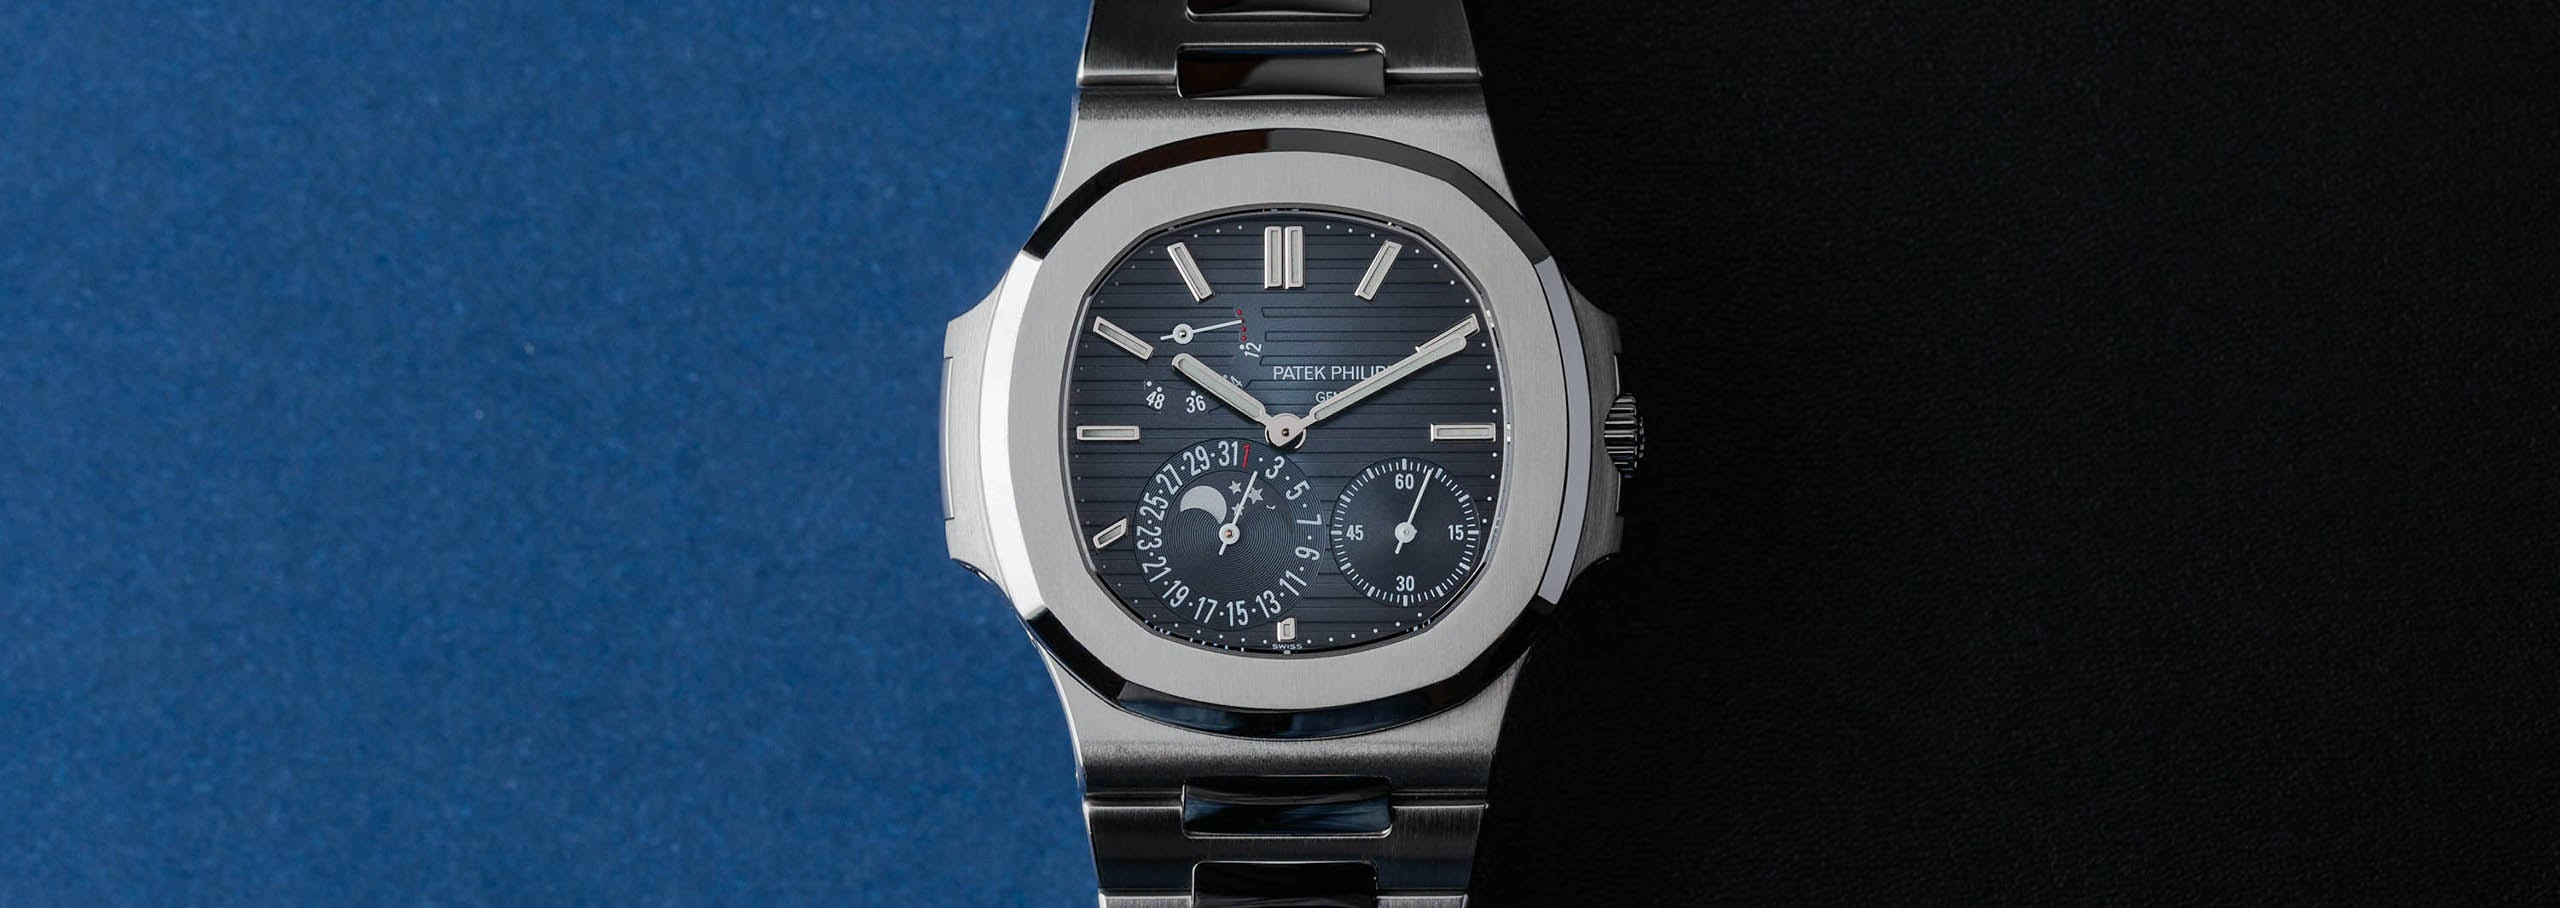 Everything You Need to Know About the Patek Philippe Nautilus